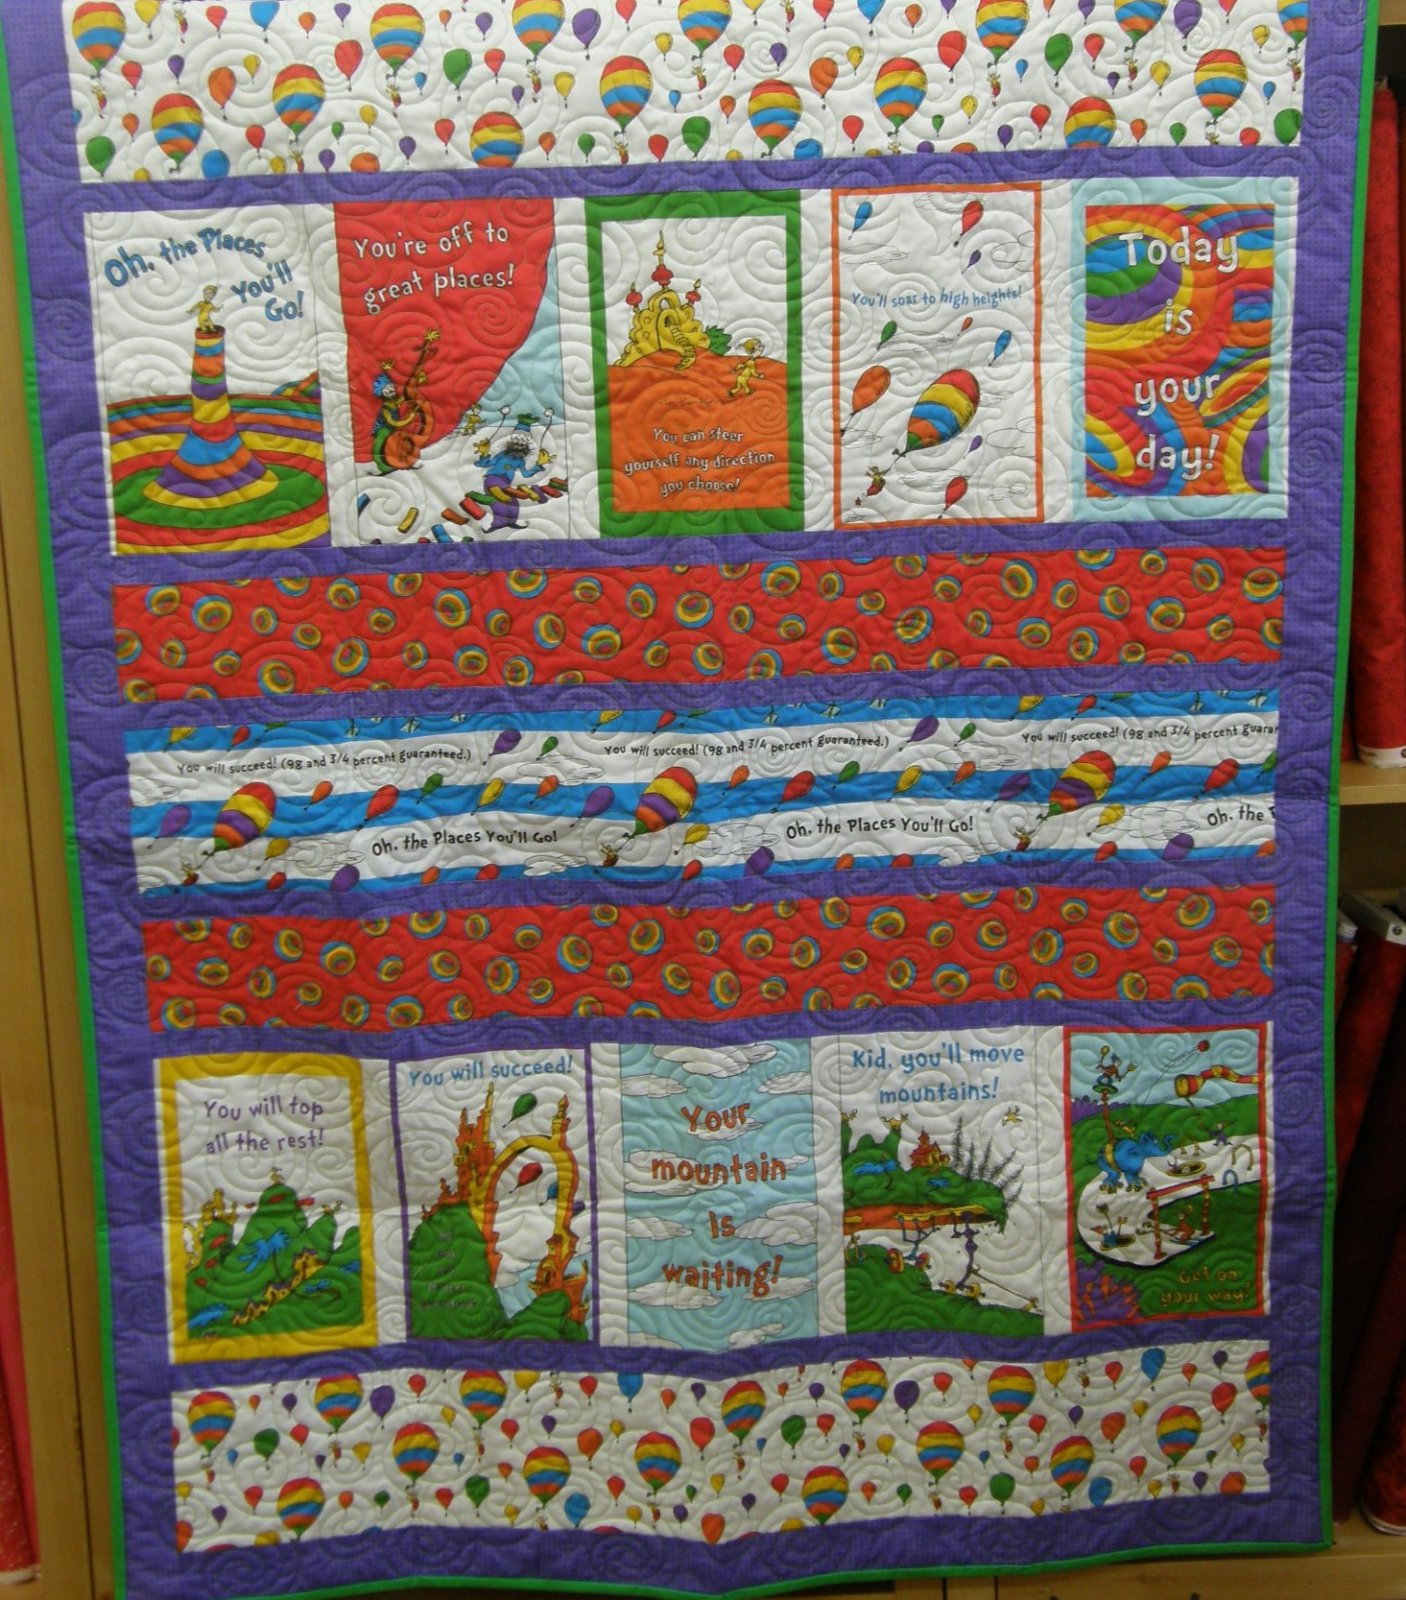 Oh, the Places You'll Go Lap quilt